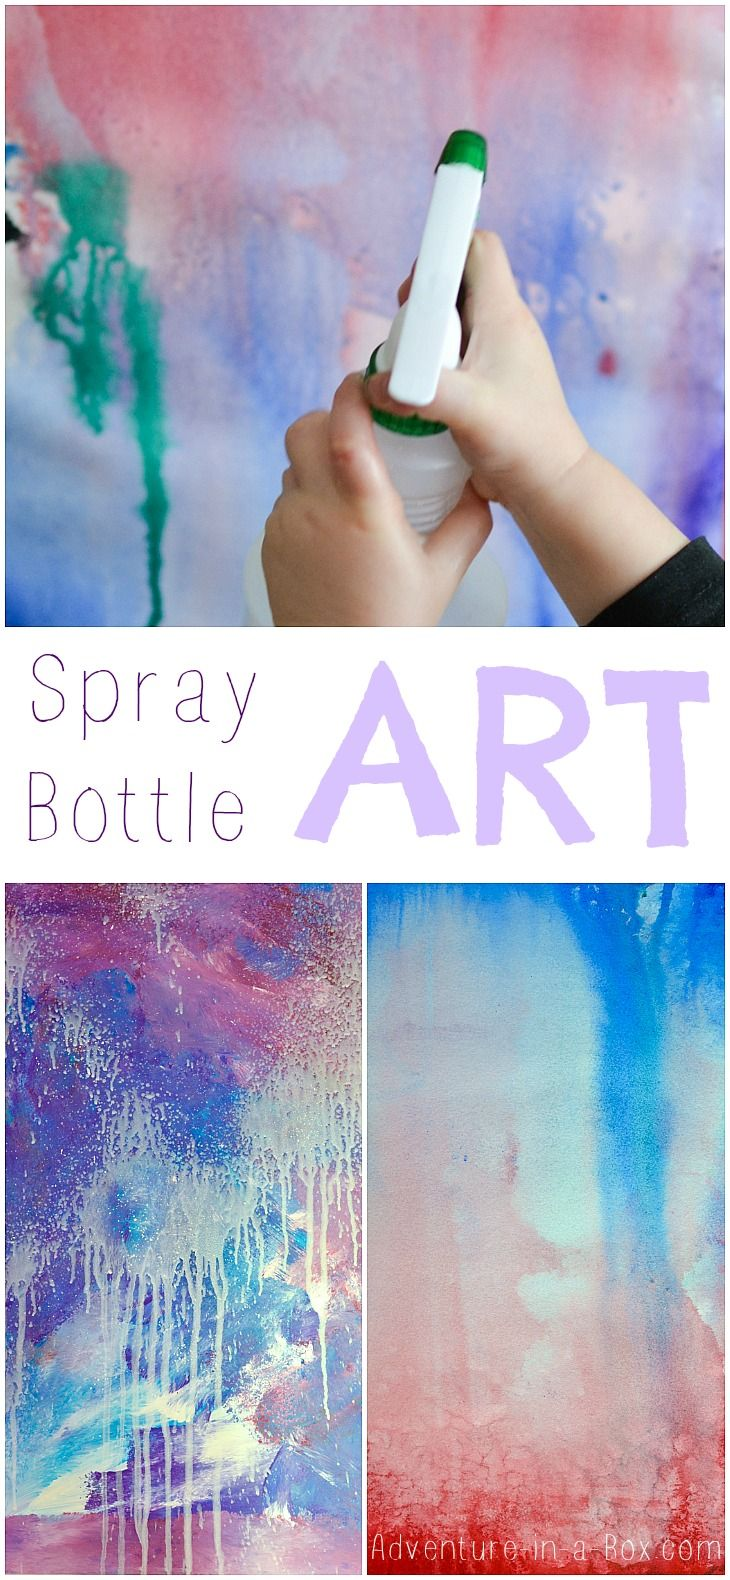 Spray Bottle Art for Kids: a splash of colours and fun! This process art activity guarantees a lot of giggles.